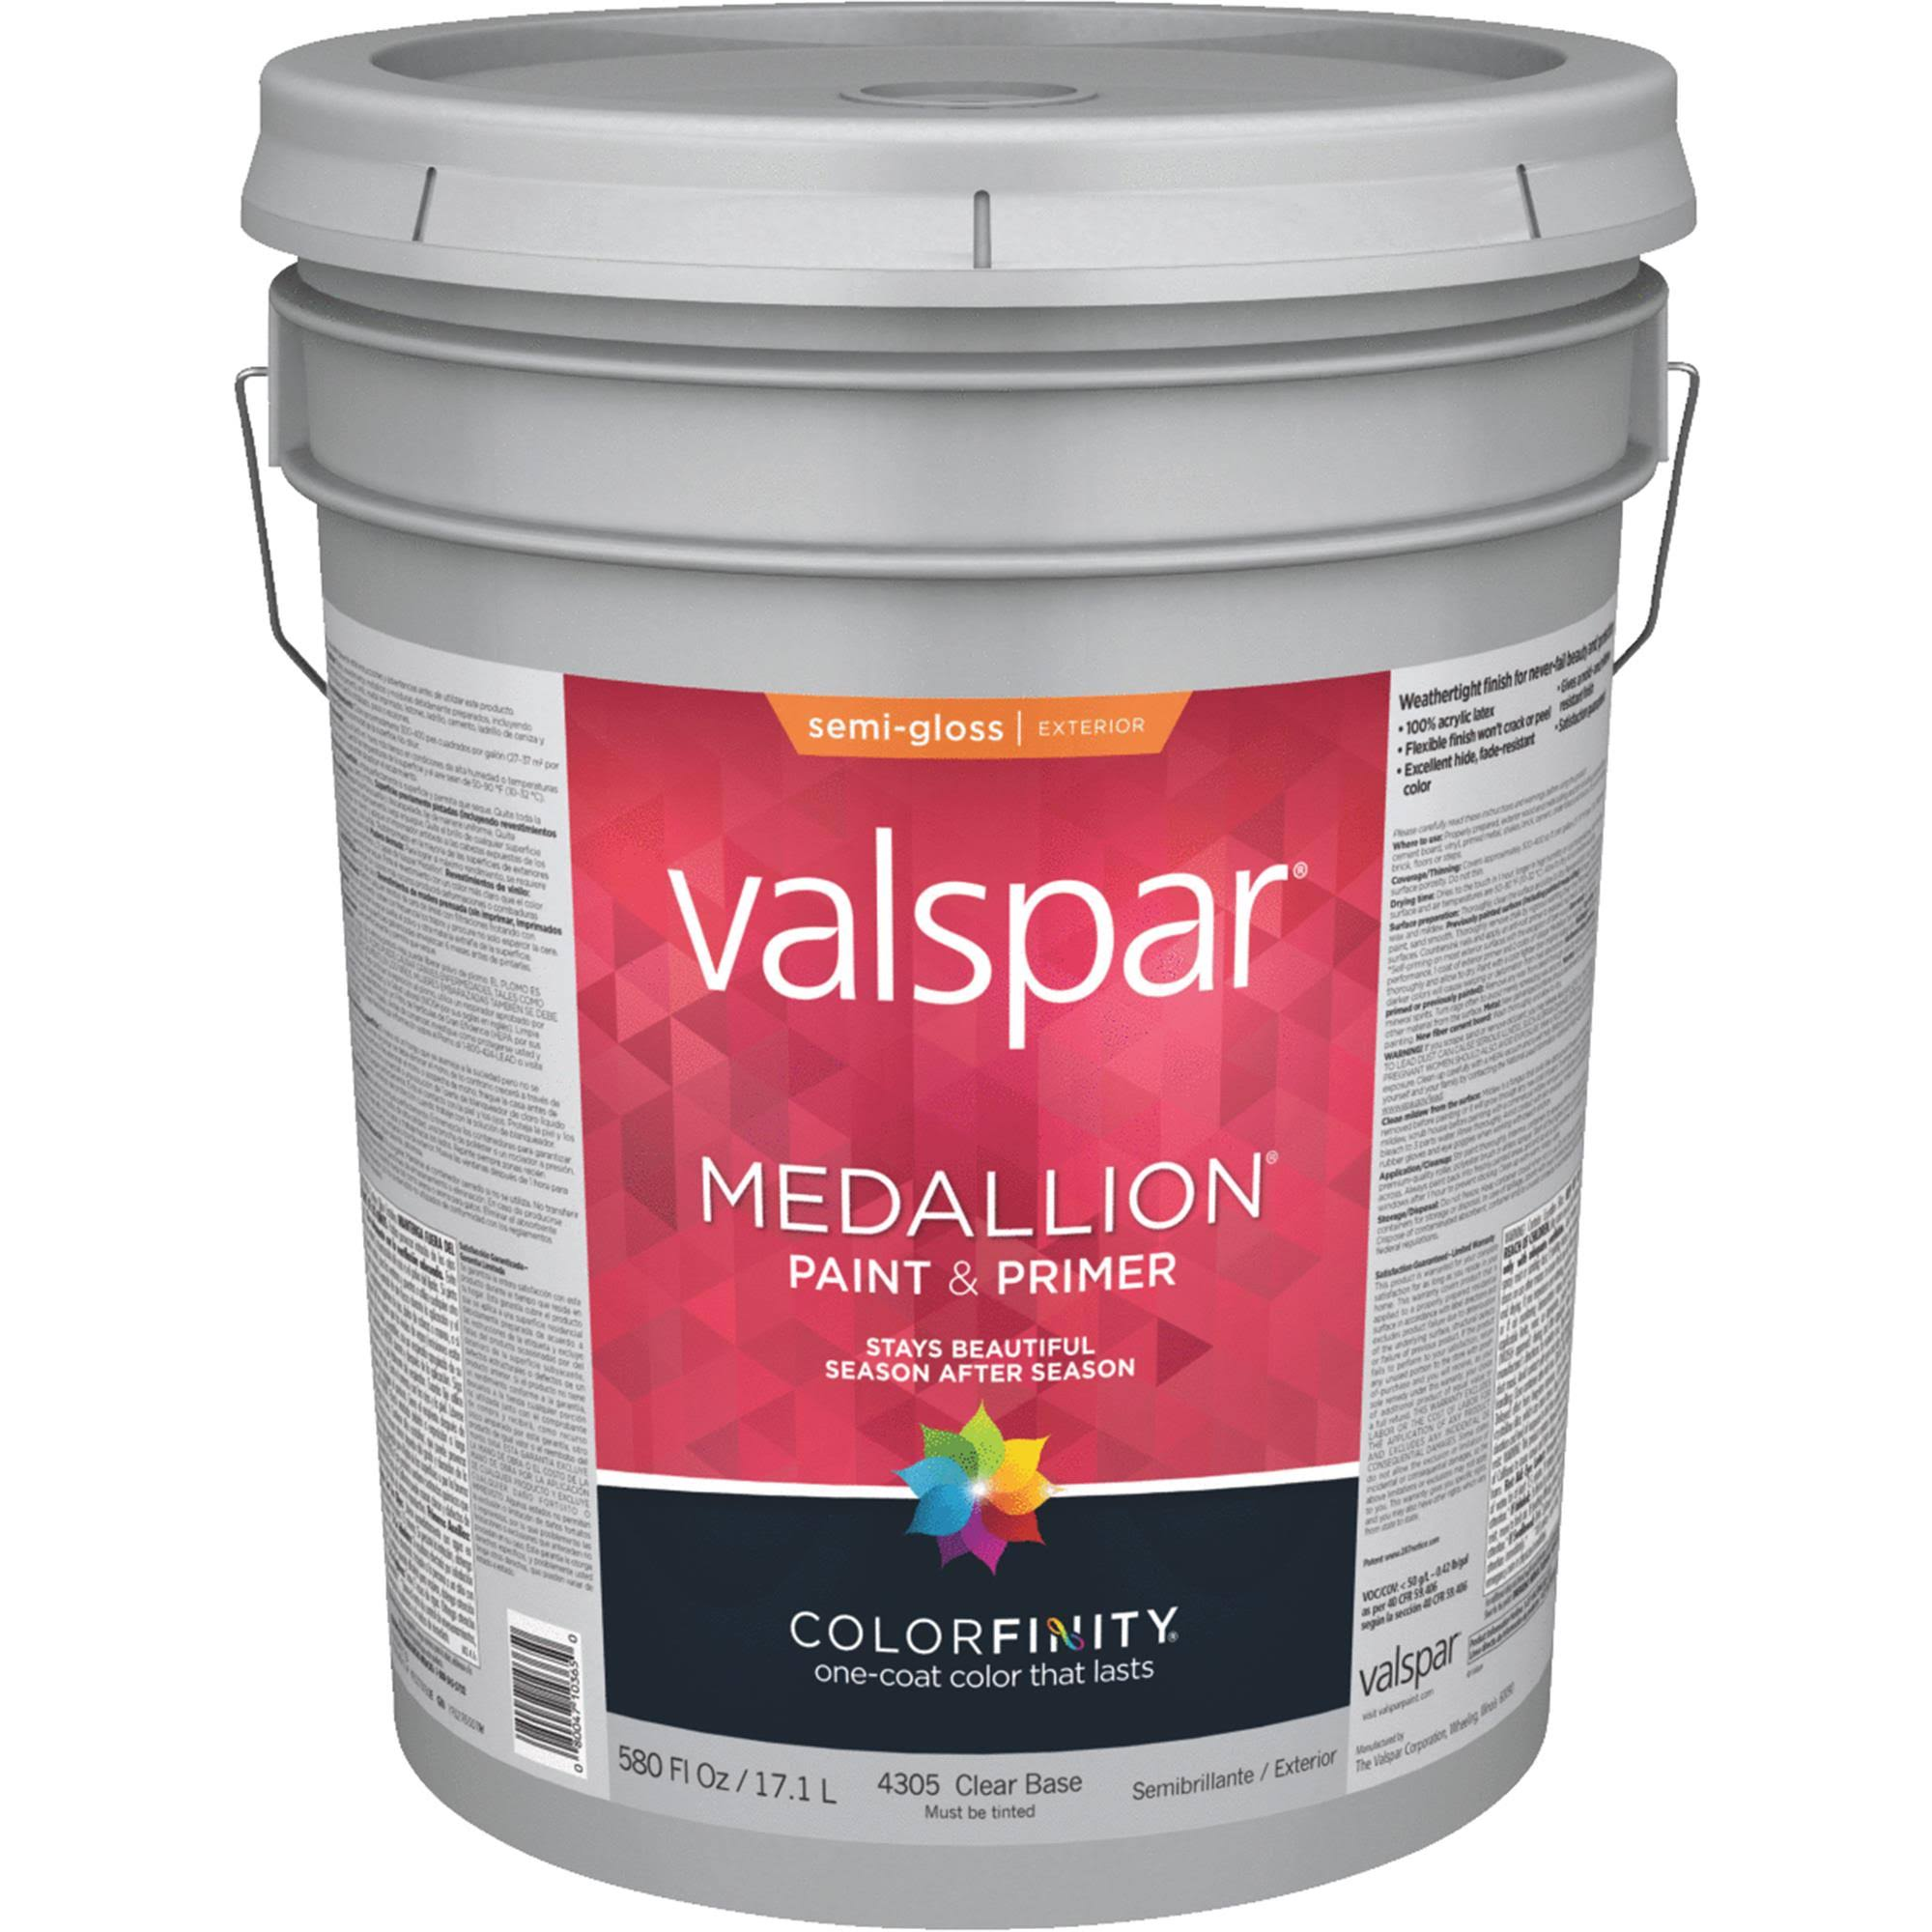 Valspar Medallion Exterior Latex Paint - Semi-gloss, 5 Gallon